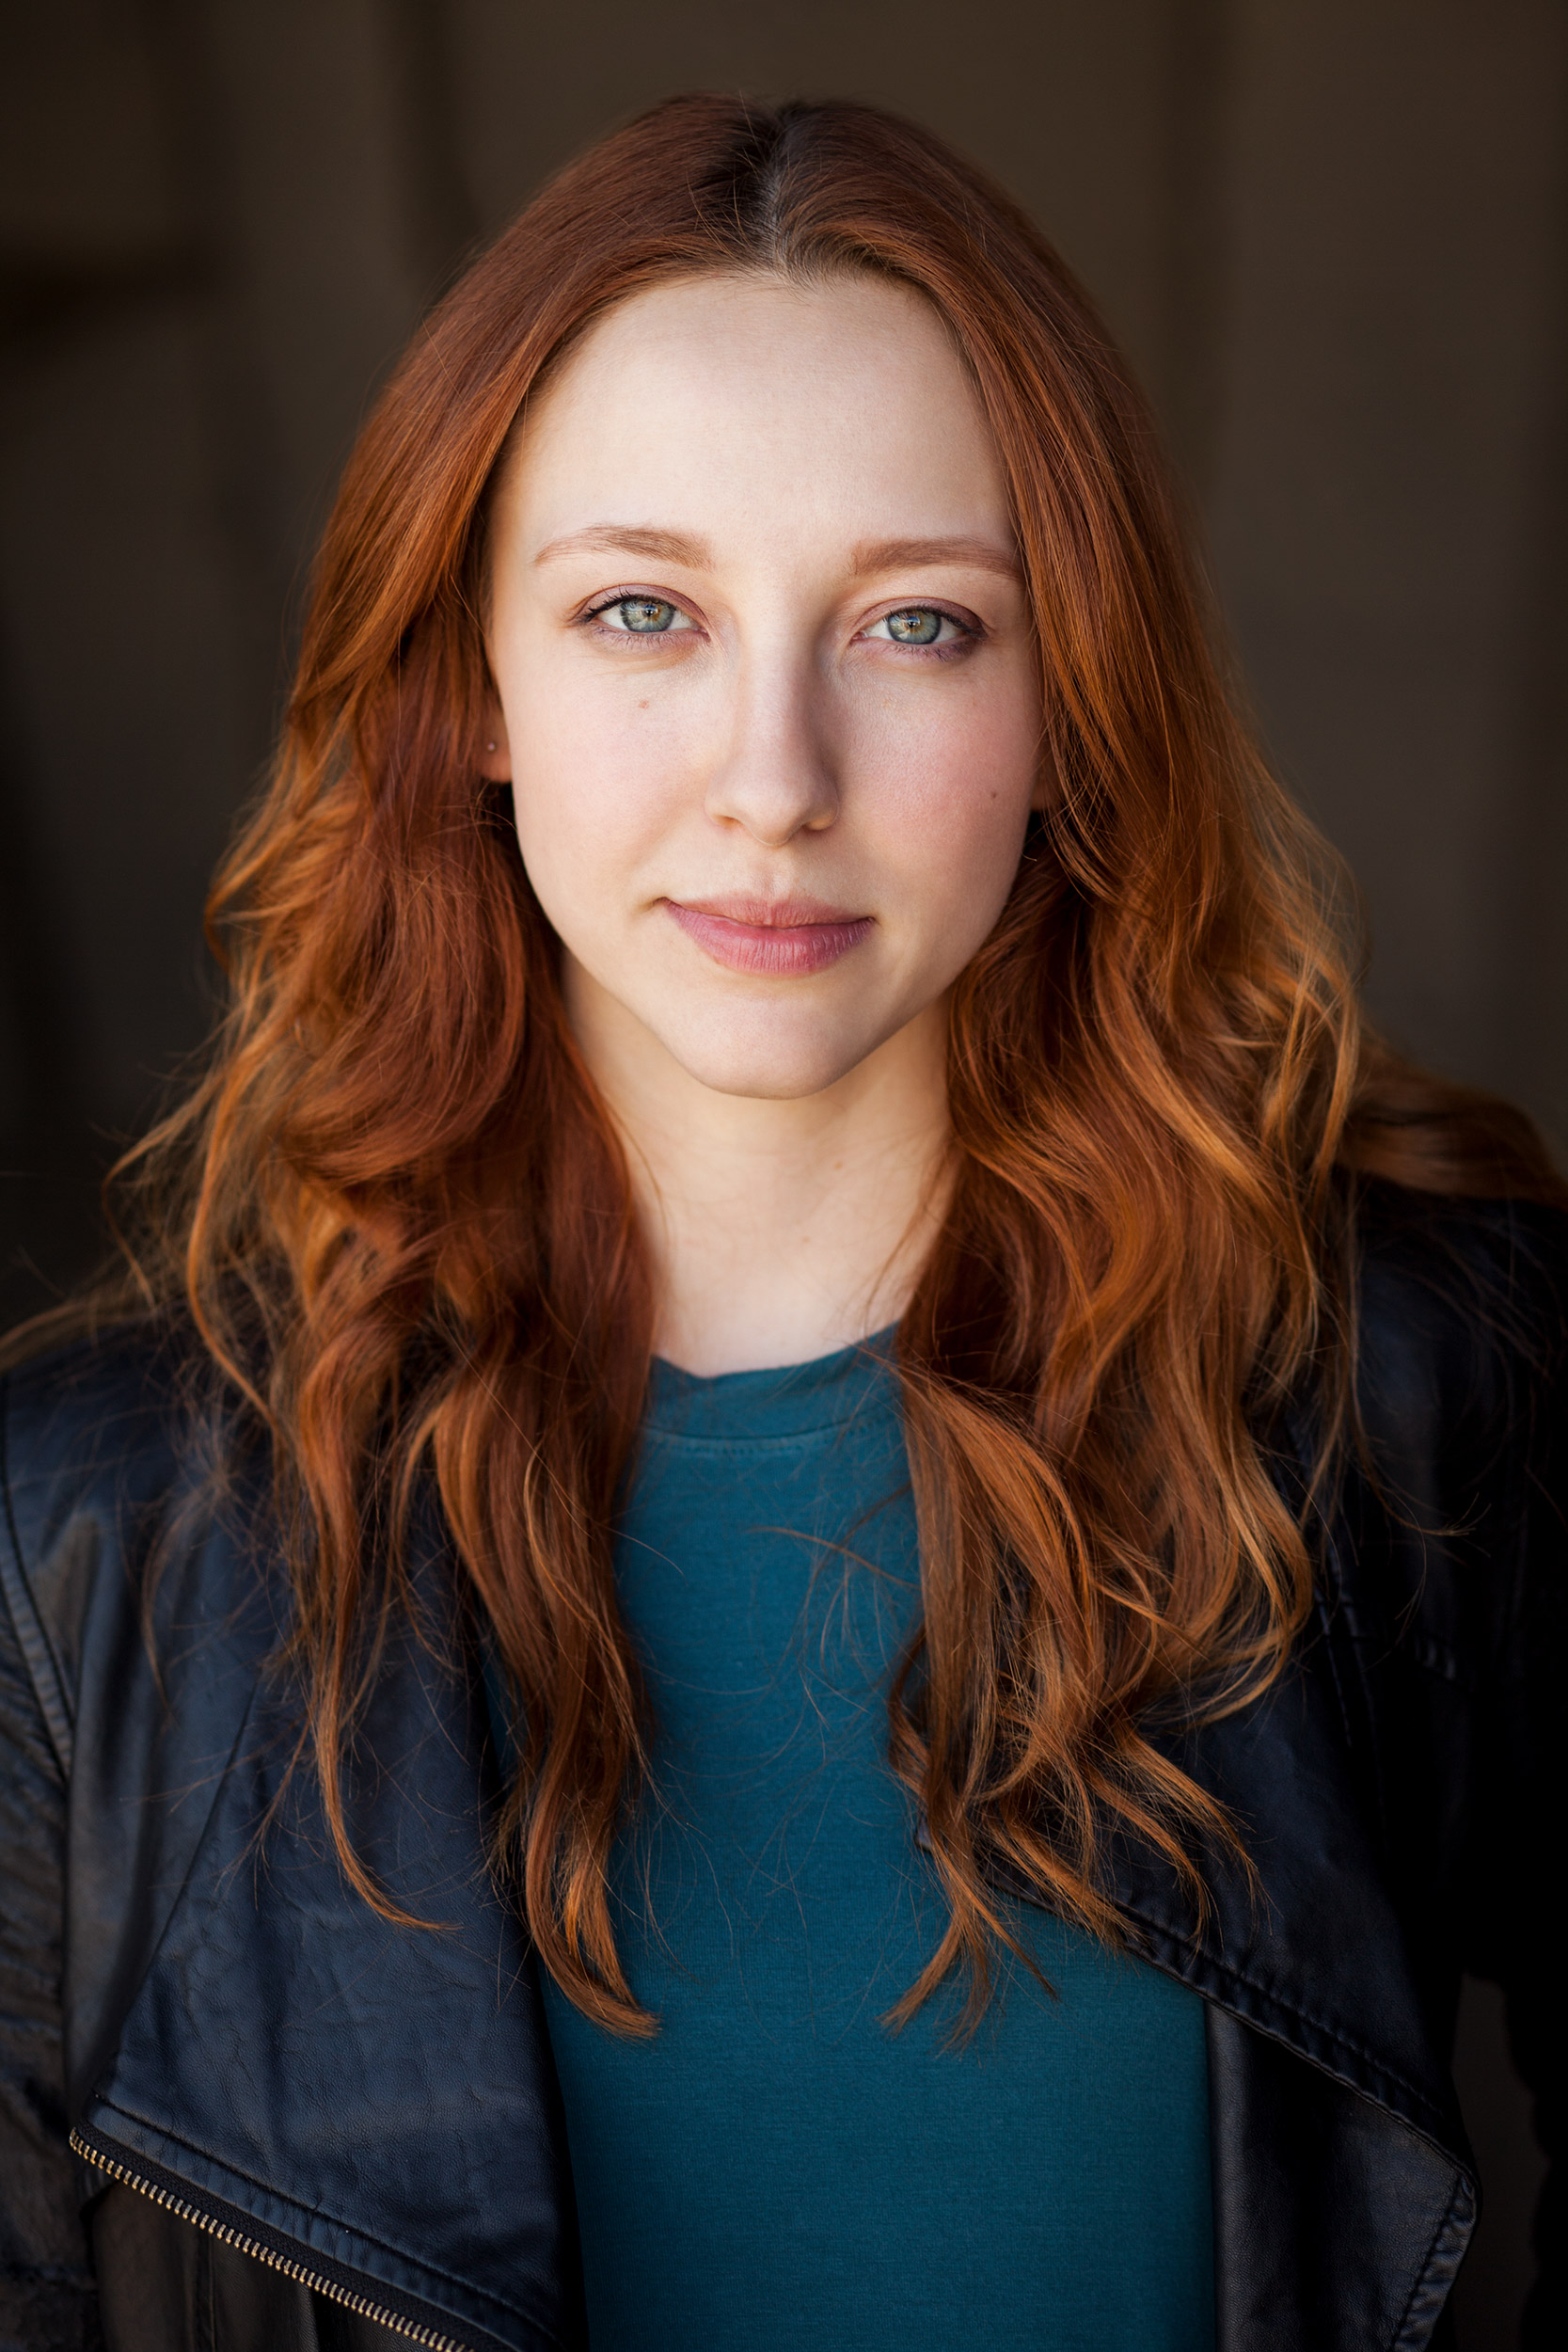 Abbey_May_red_head_leather_jacket_headshot.jpg